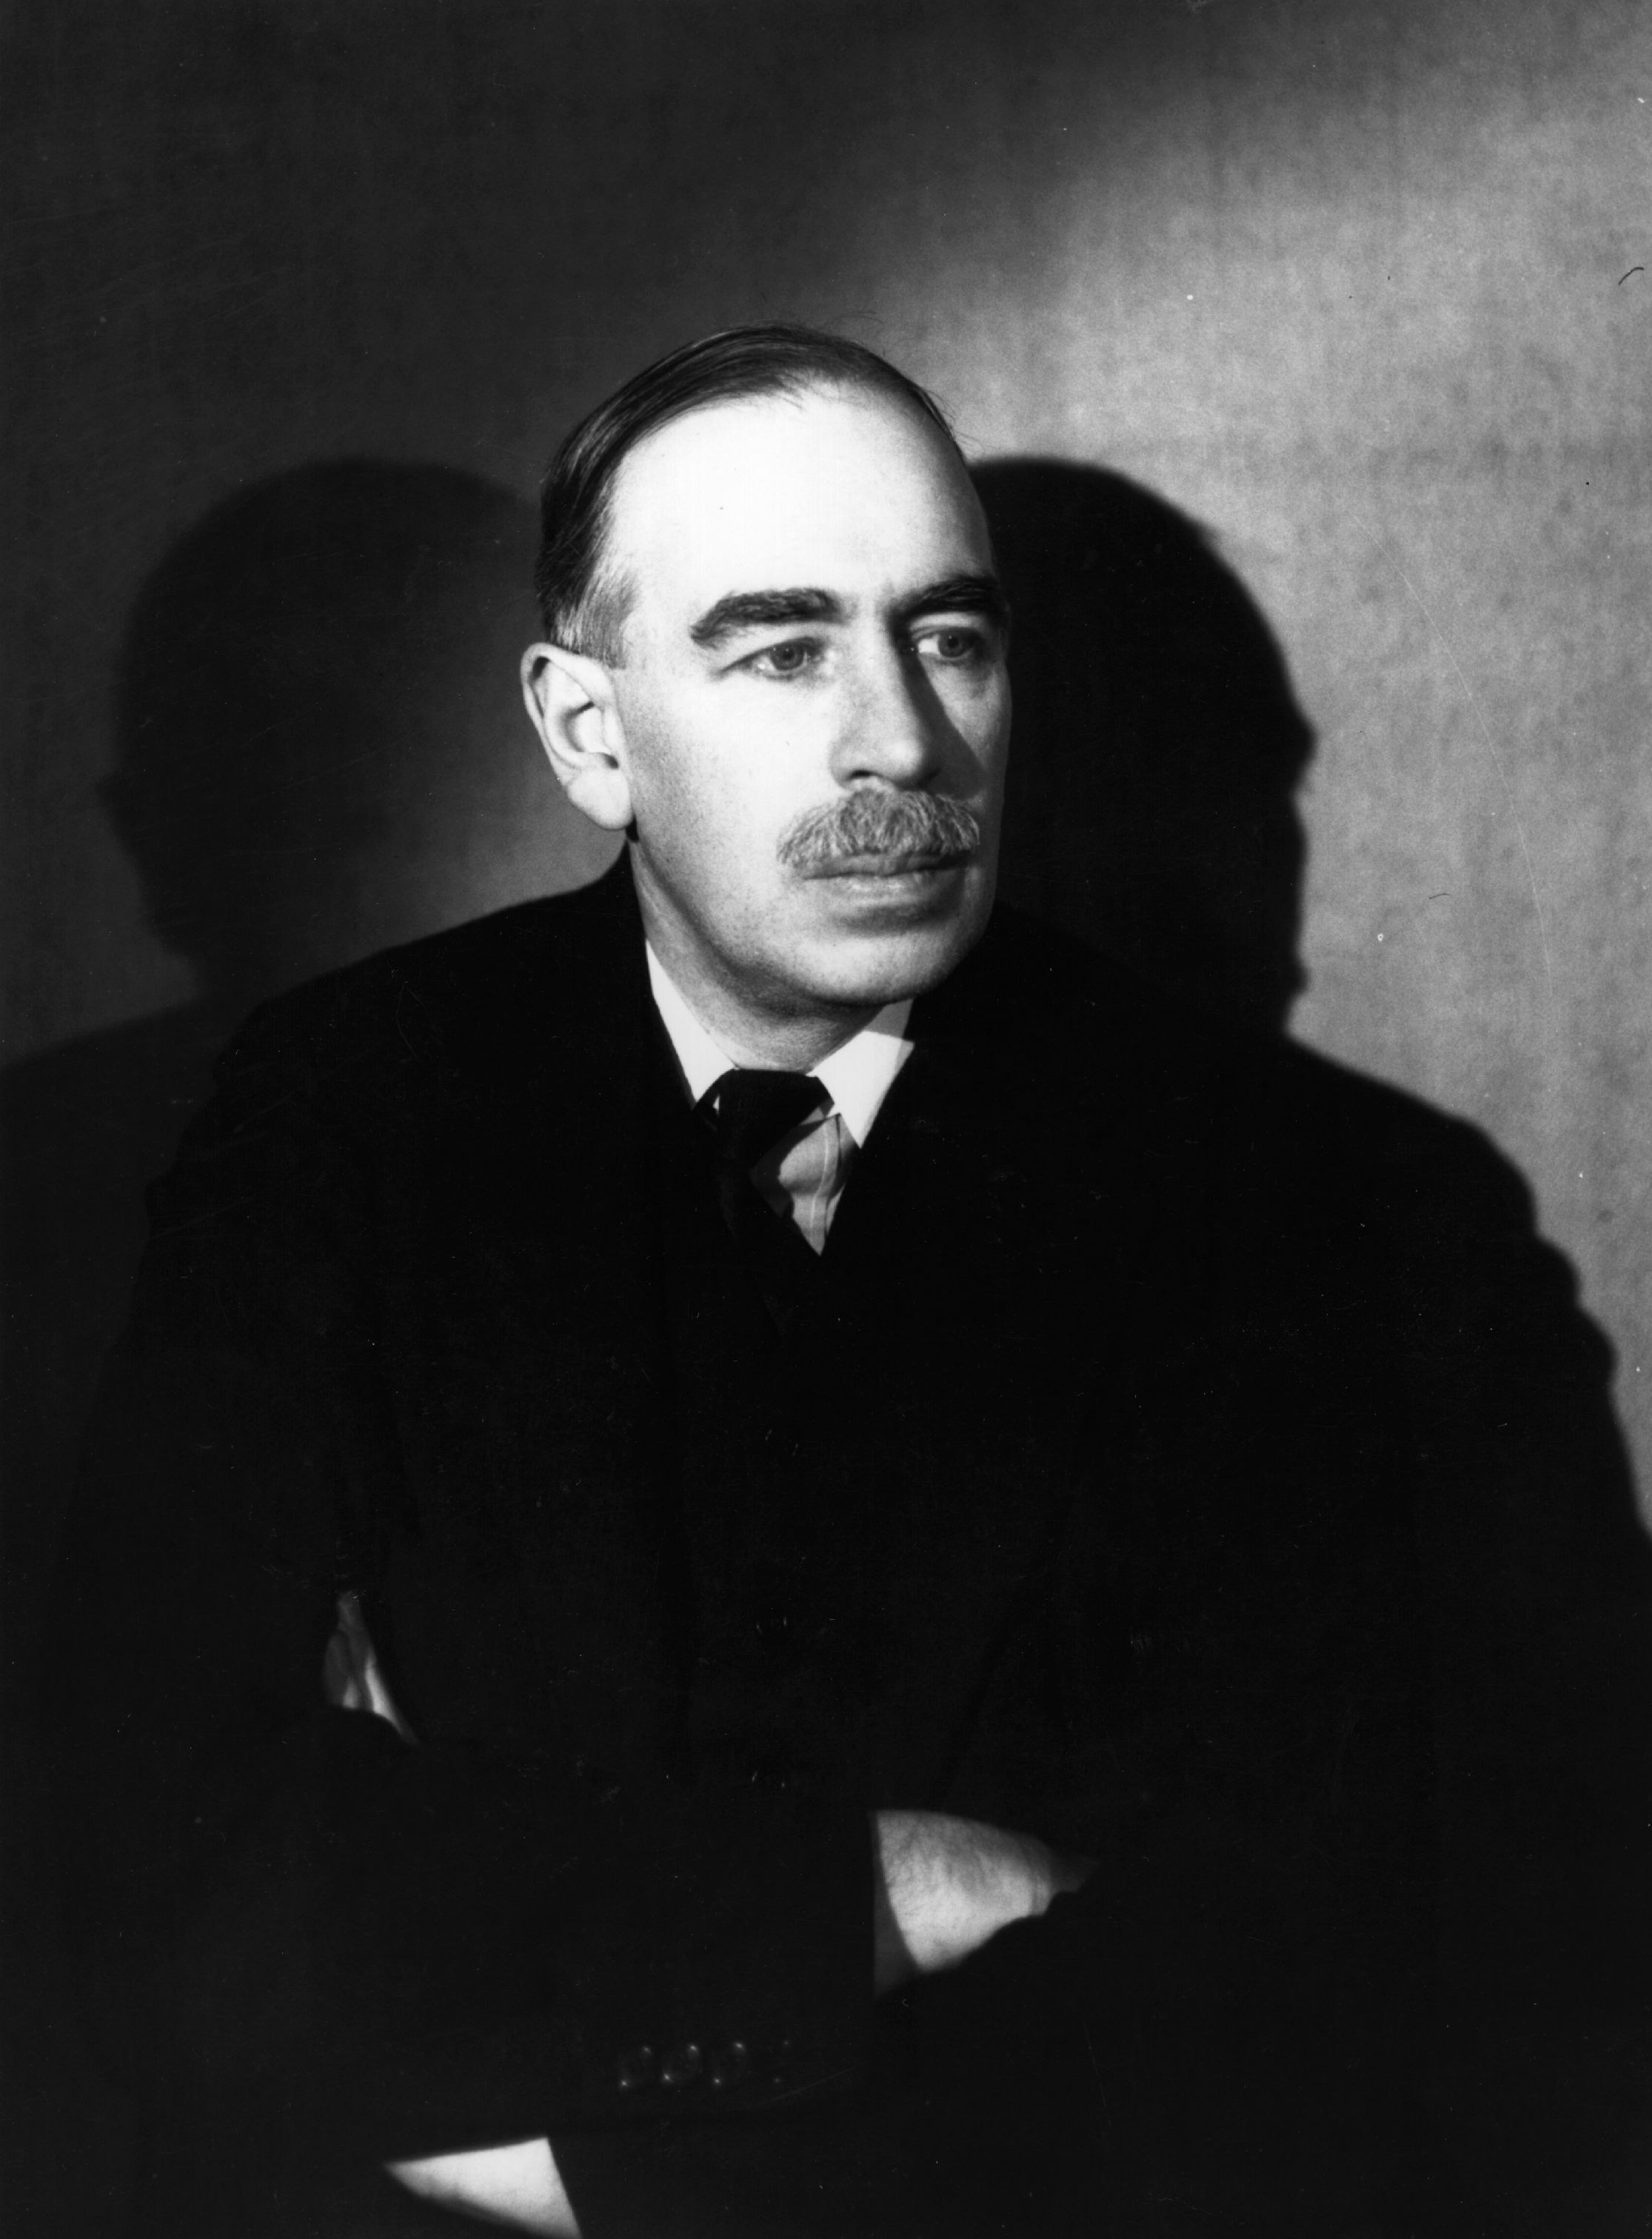 essays in biography keynes << coursework academic writing service essays in biography keynes